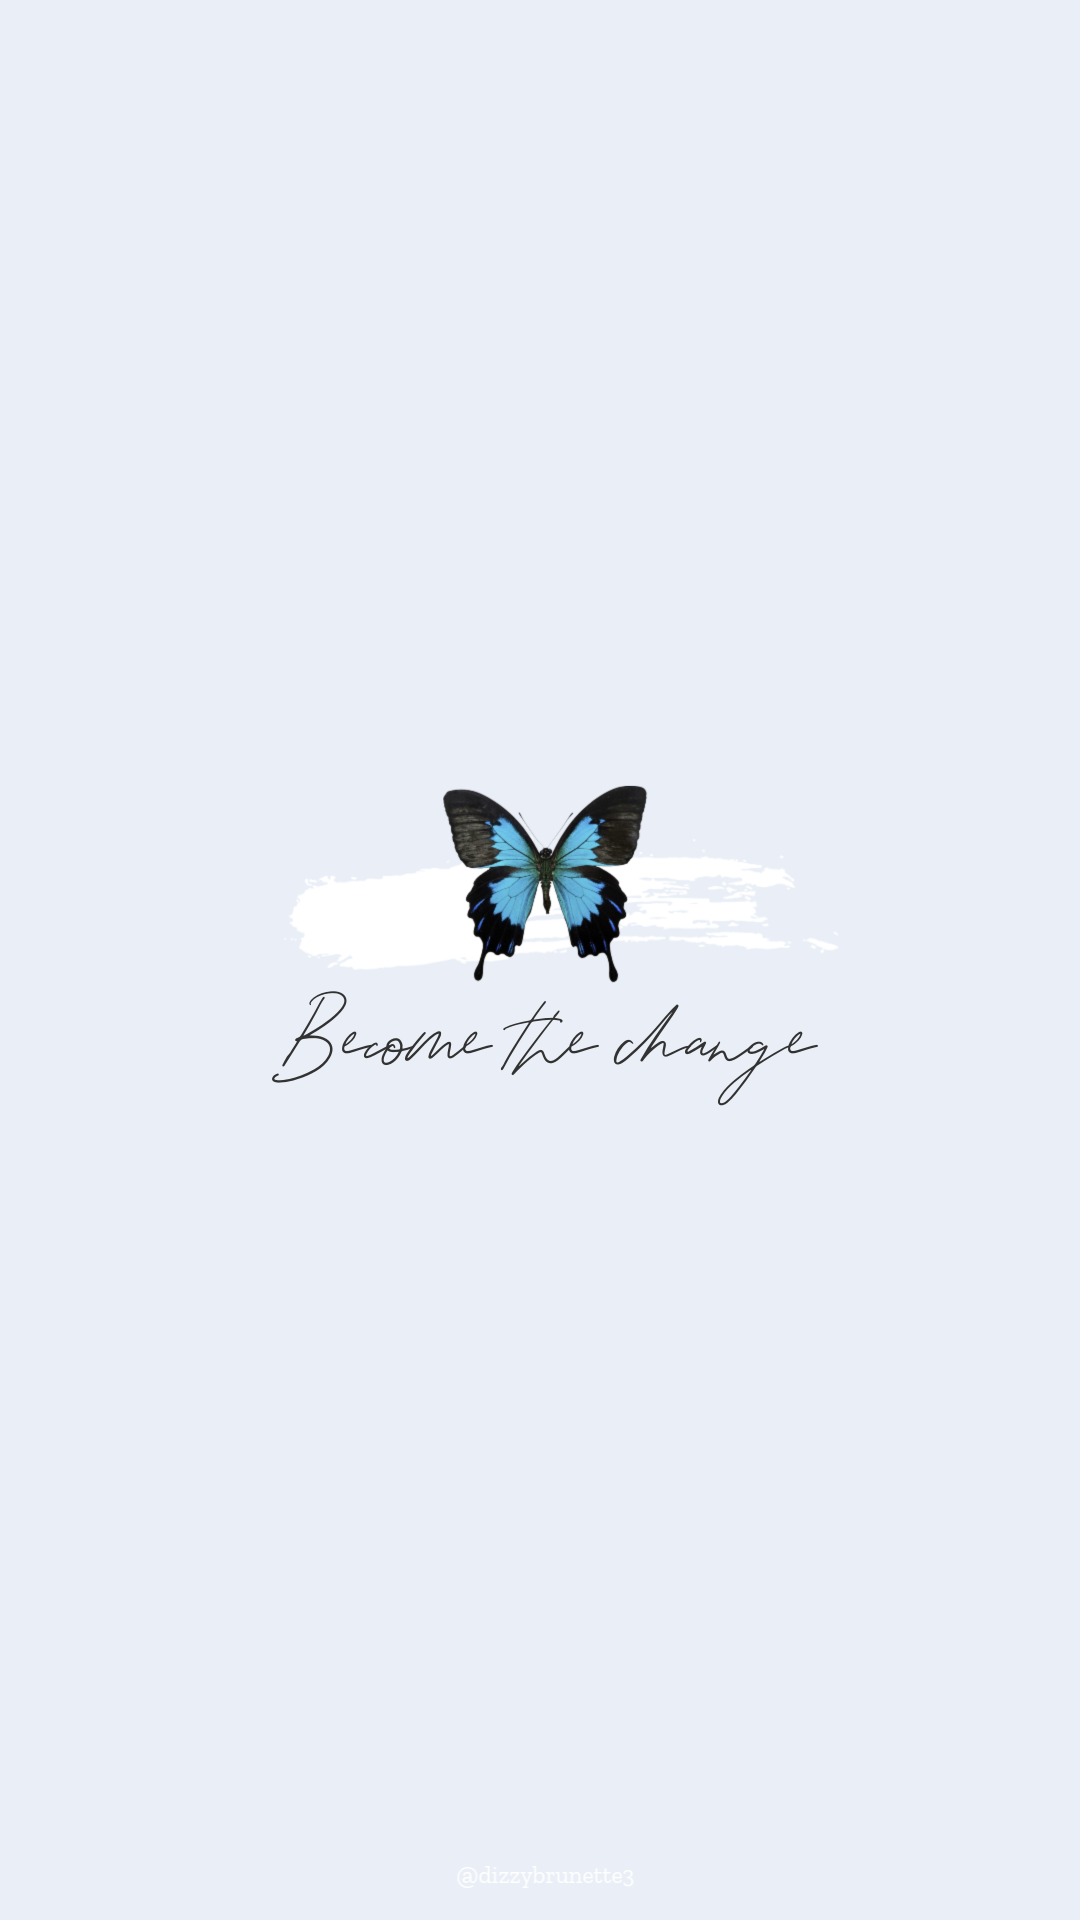 Free Phone Wallpapers April Butterfly Wallpaper Iphone Aesthetic Iphone Wallpaper Pretty Wallpaper Iphone